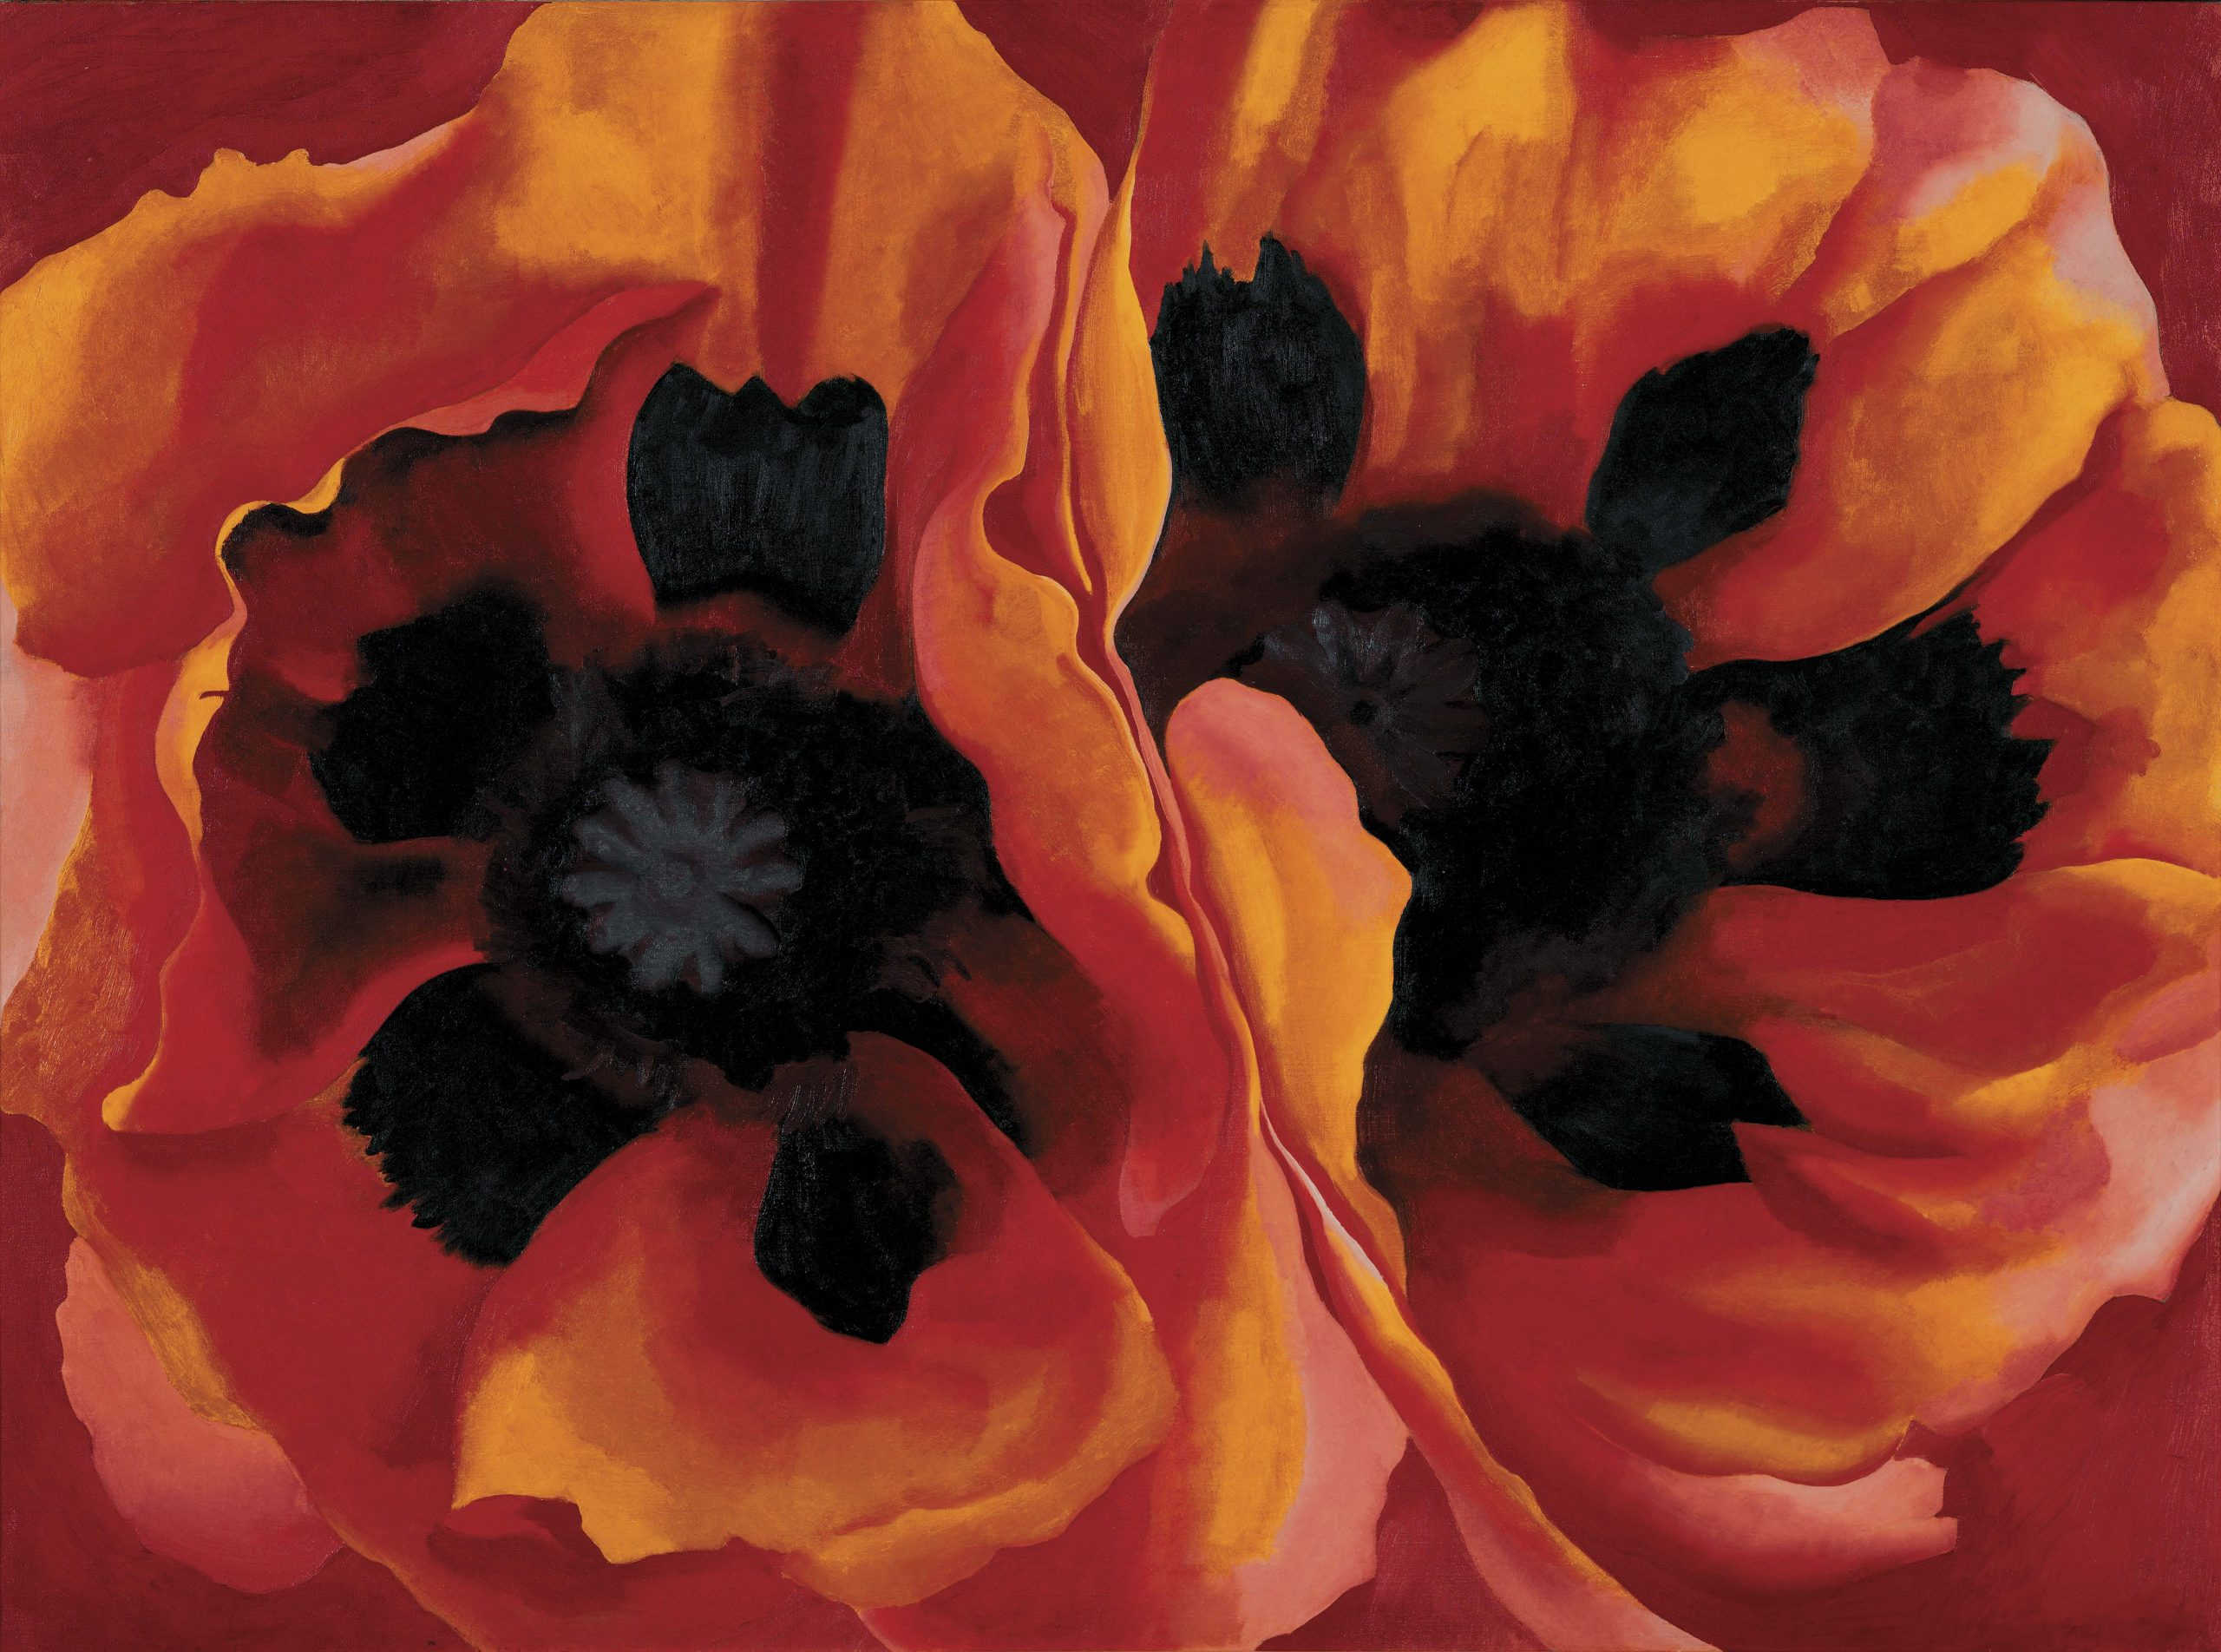 Georgia O'Keeffe, Oriental Poppies, 1927 Huile sur toile, 76,7 × 102,1 cm Collection of the Frederick R. Weisman Art Museum at the University of Minnesota, Minneapolis. Museum Purchase (1937.1) Image Weisman Art Museum at the University of Minnesota, Minneapolis © Georgia O'Keeffe Museum / Adagp, Paris, 2021